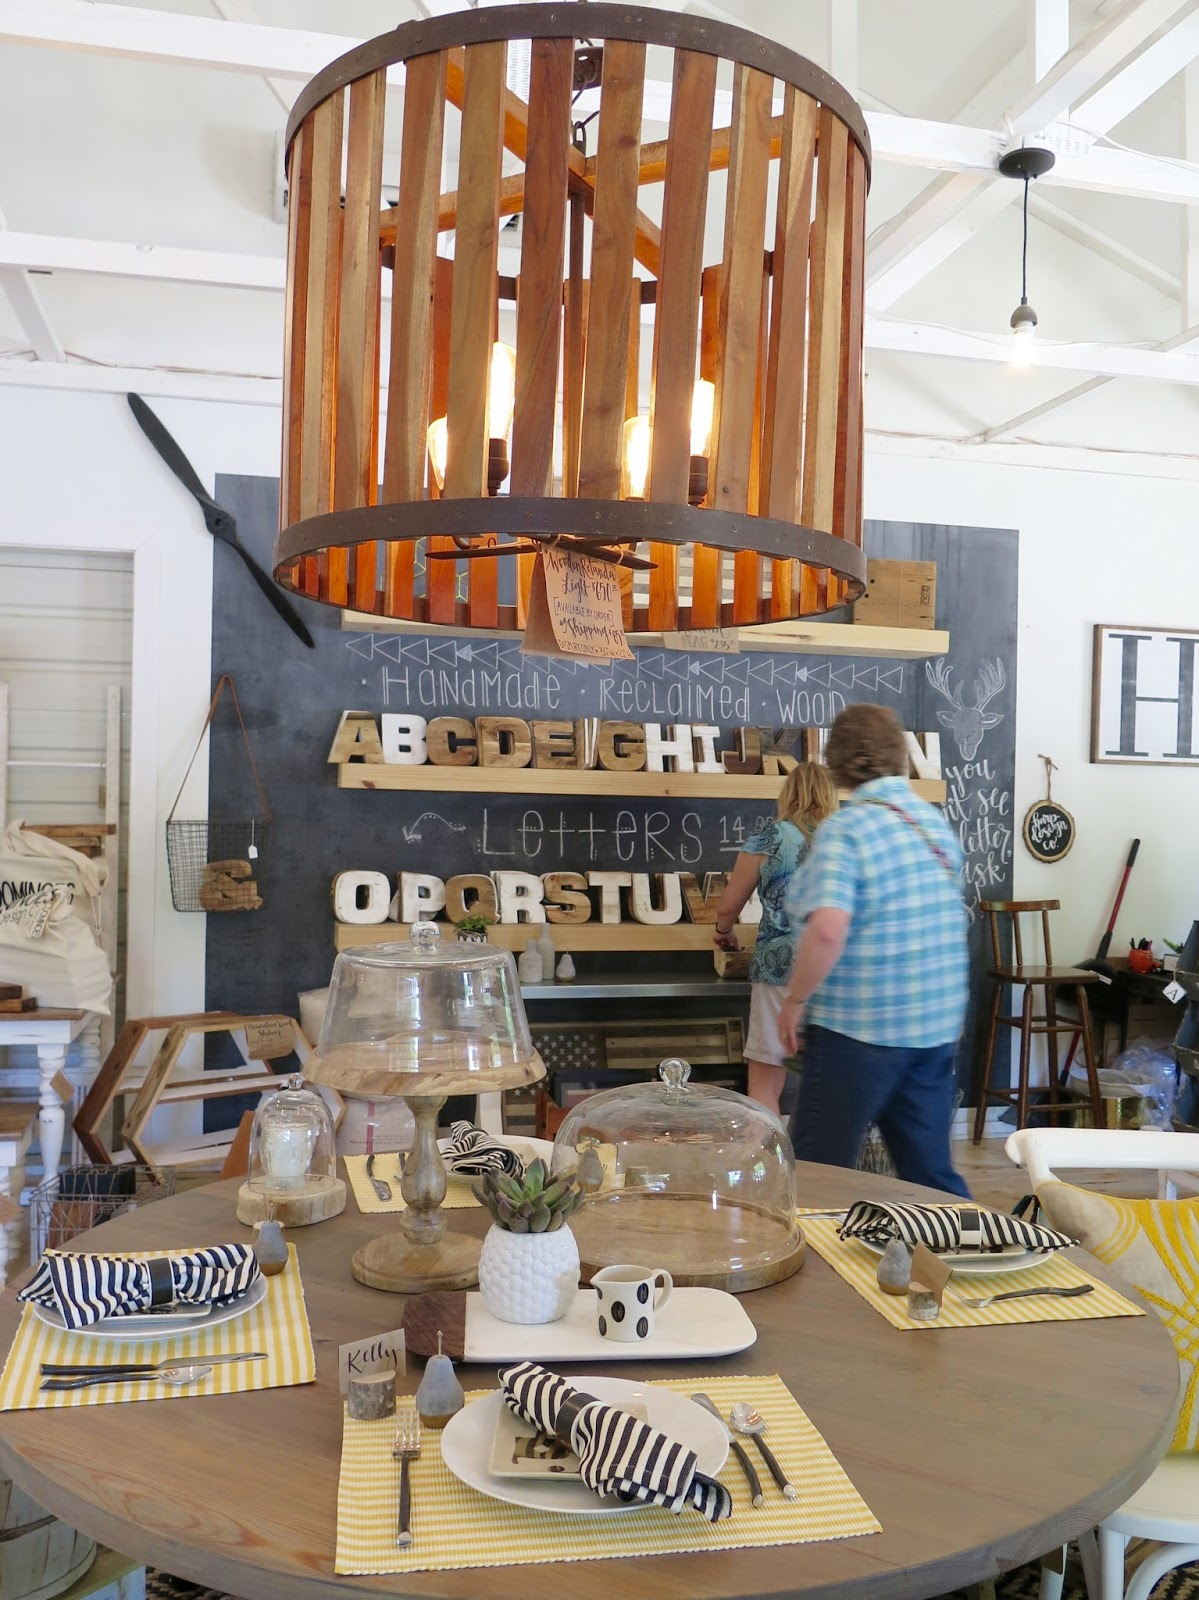 We All Enjoyed Our Visit To The Harp Design Co Harpdesignco What More Could Ask For A Little History Yesterday And Amodern Day Home Shows Today